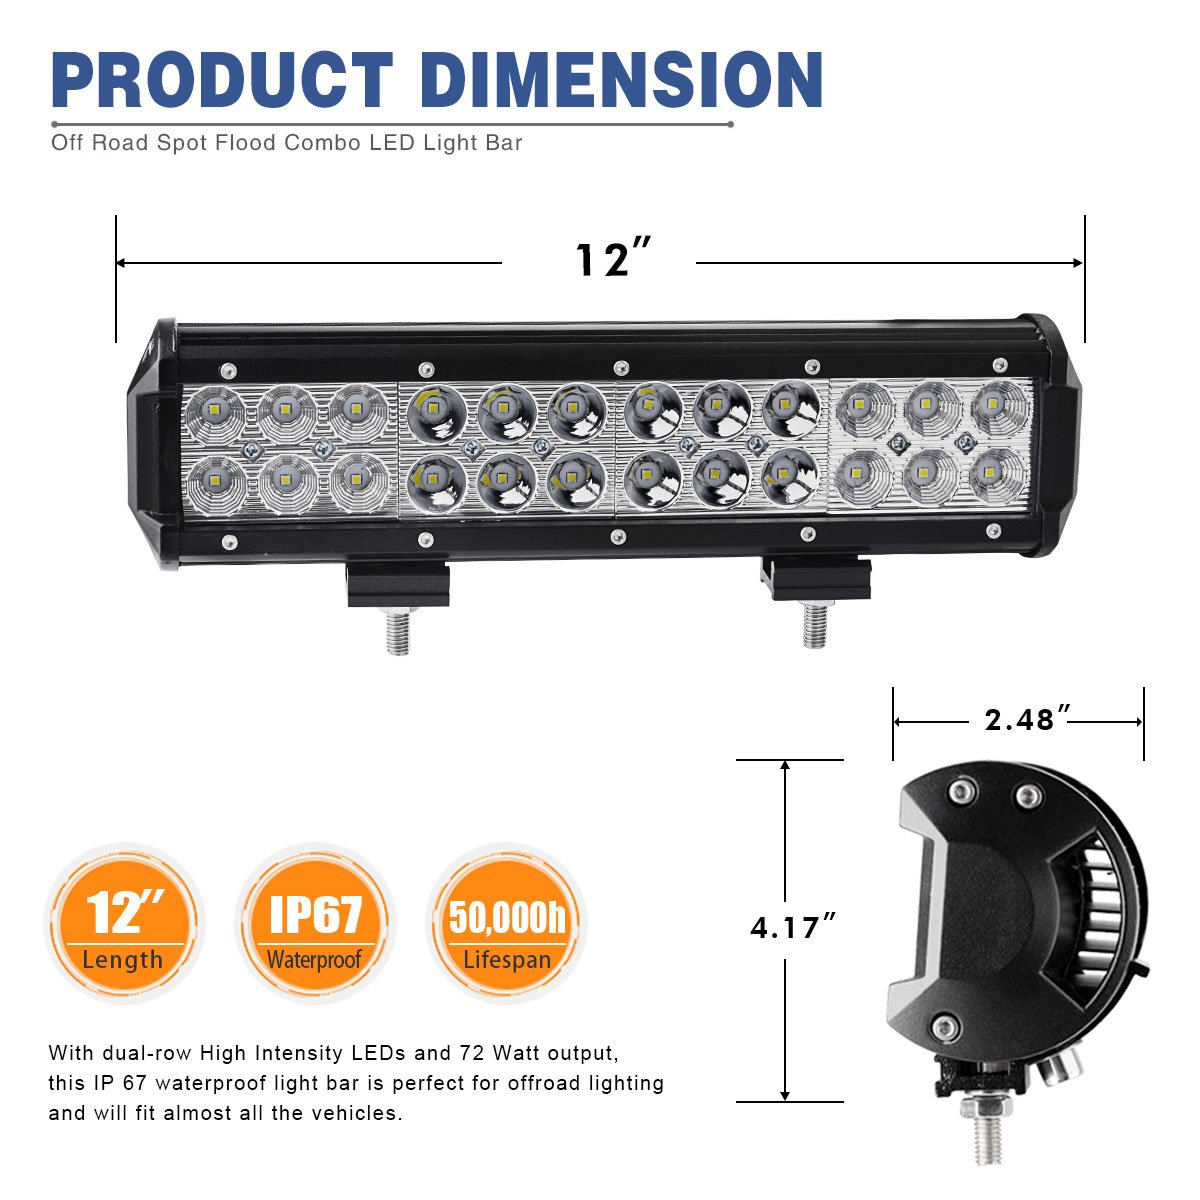 Yitamotor Led Light Bar 72w 12inch Spot Flood Combo Do I Need A Wiring Harness For My Free Download Off Road Lights Driving Fog Jeep Boat Lighting